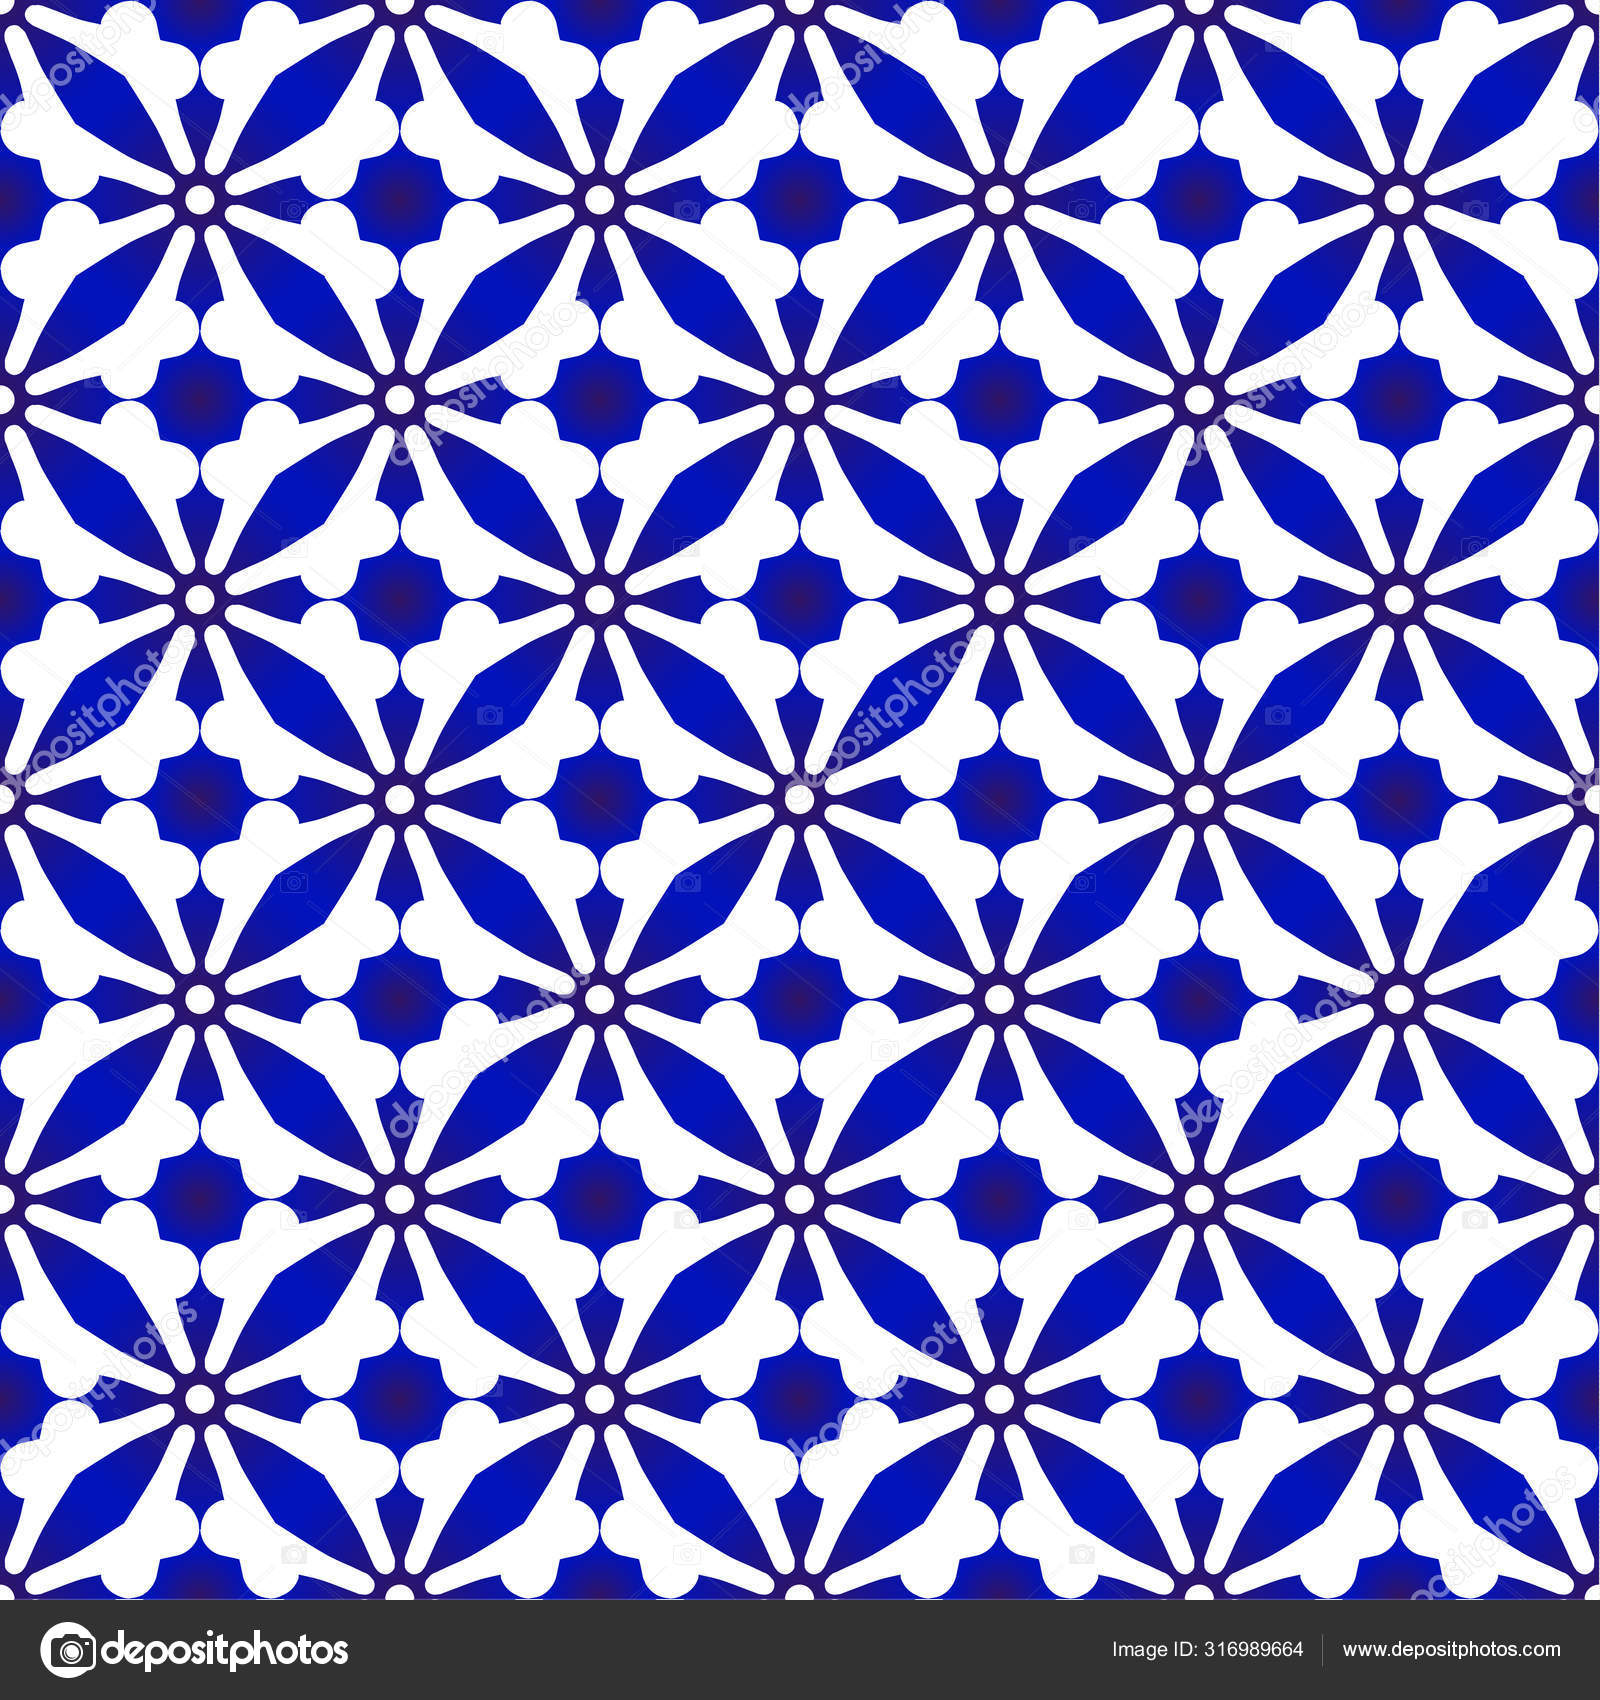 Ceramic Pattern Blue And White Vector Image By C Flowersmile Vector Stock 316989664